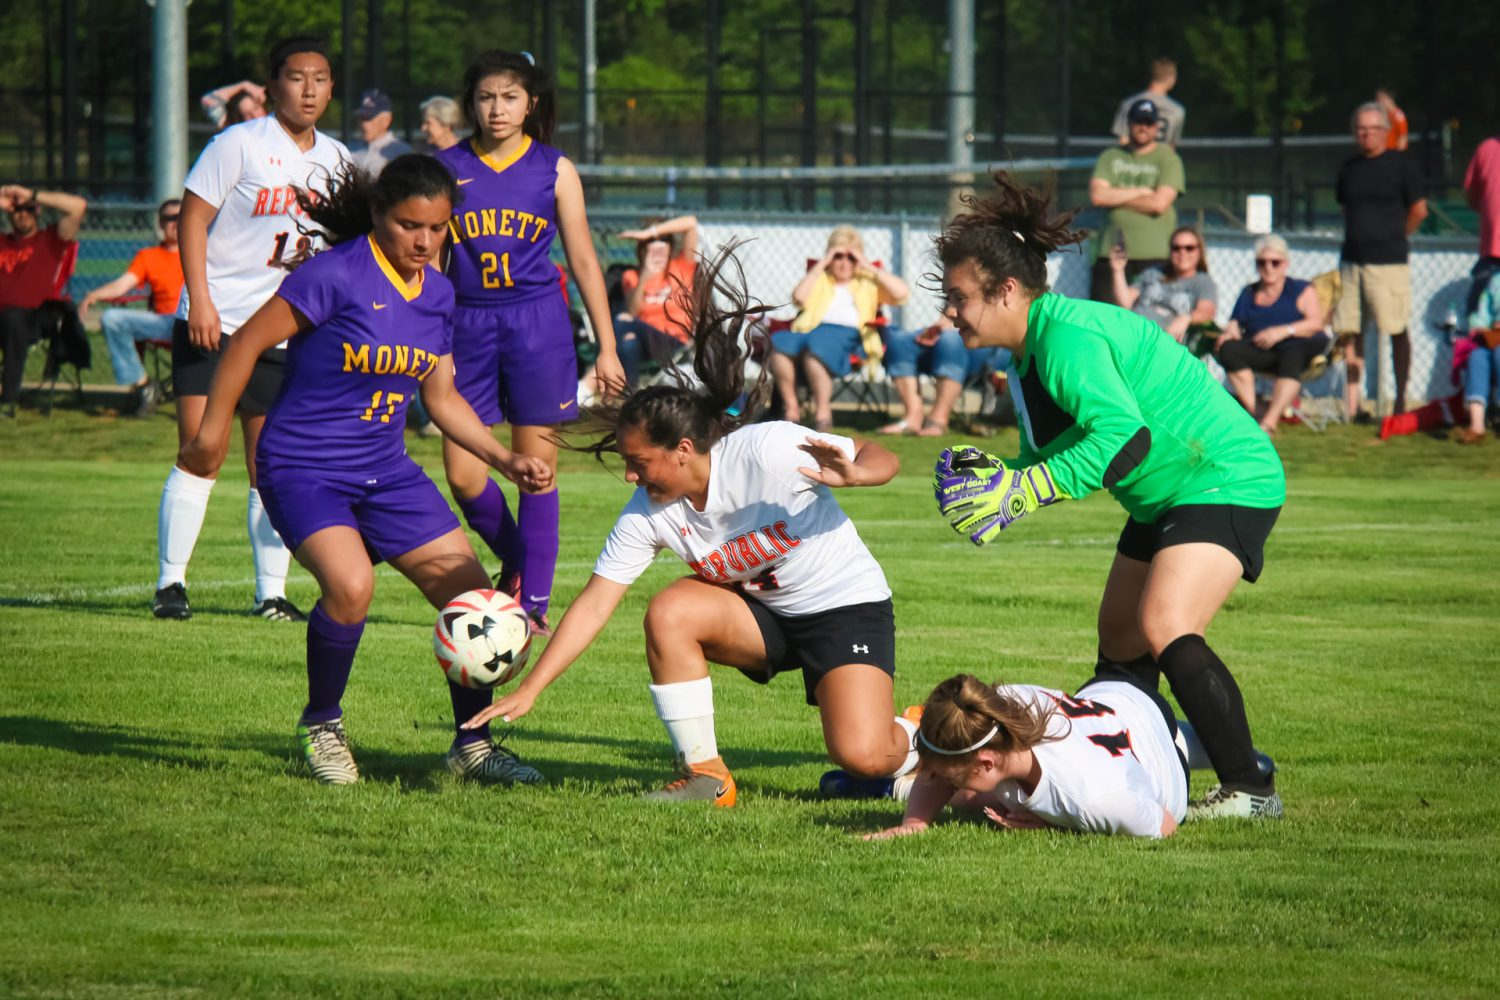 Photos:  JV Soccer Vs Monett